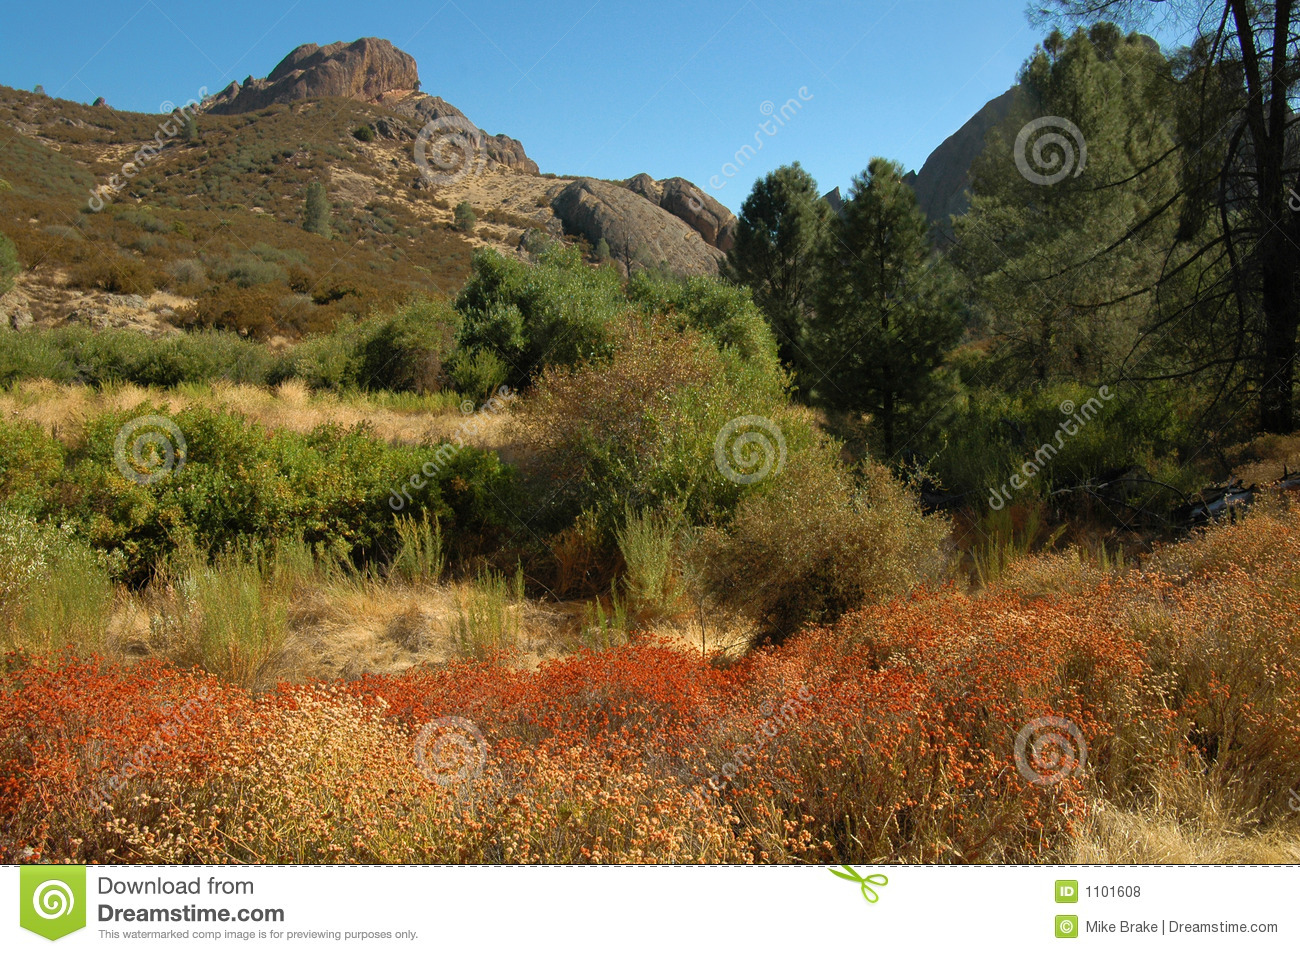 Download California stock photo. Image of outdoors, boulders, hike - 1101608